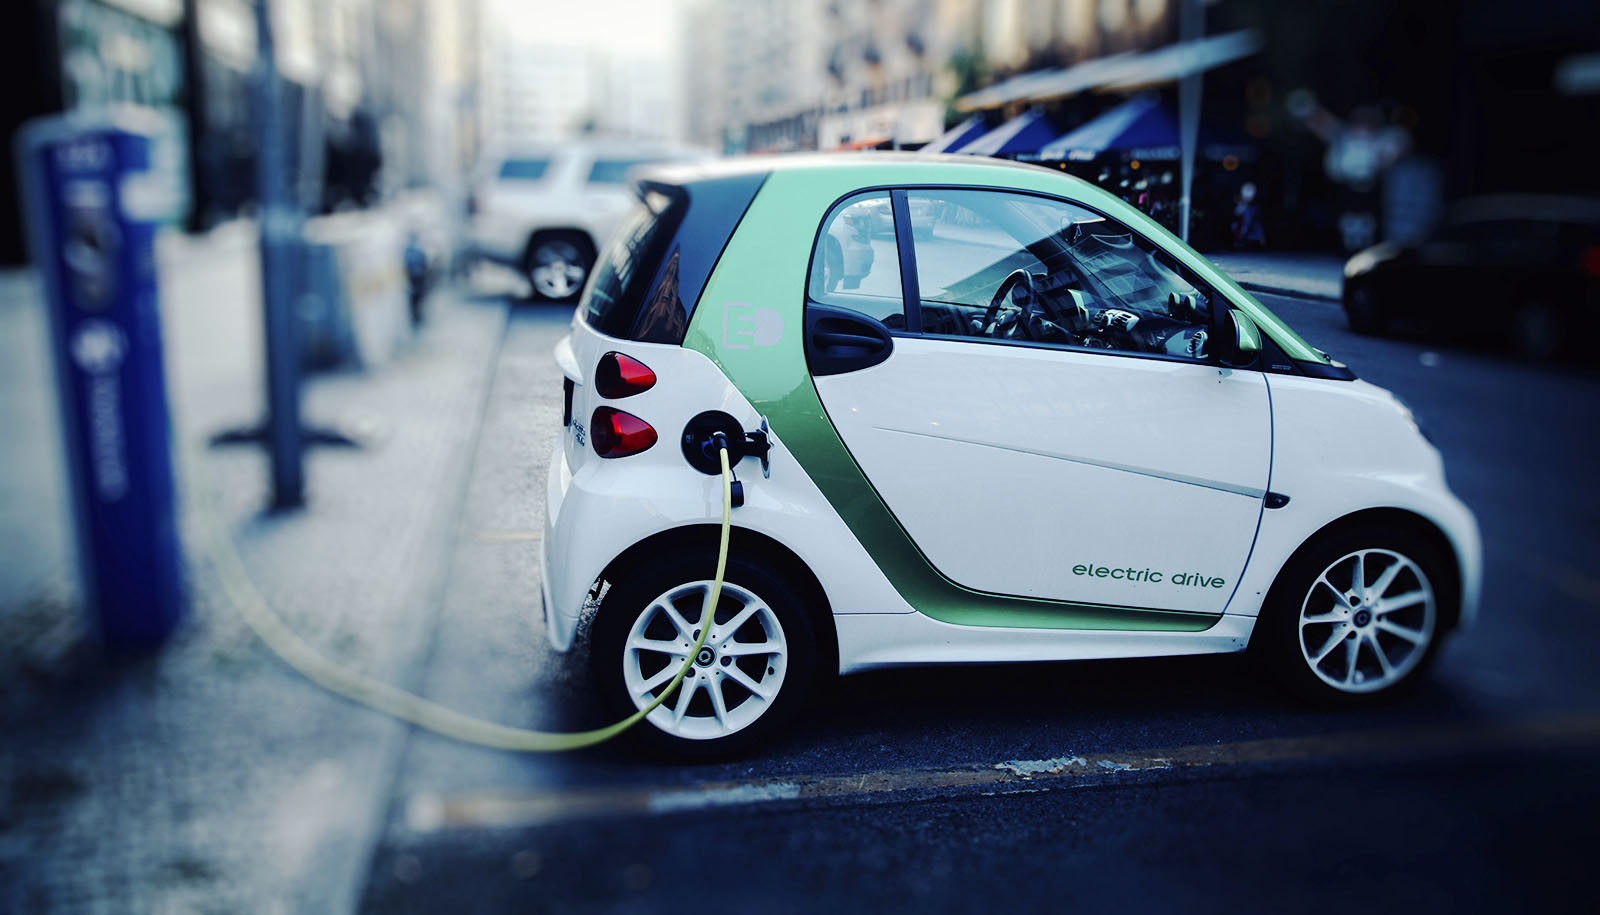 New Cof Material Could Mean Electric Cars Charge Faster